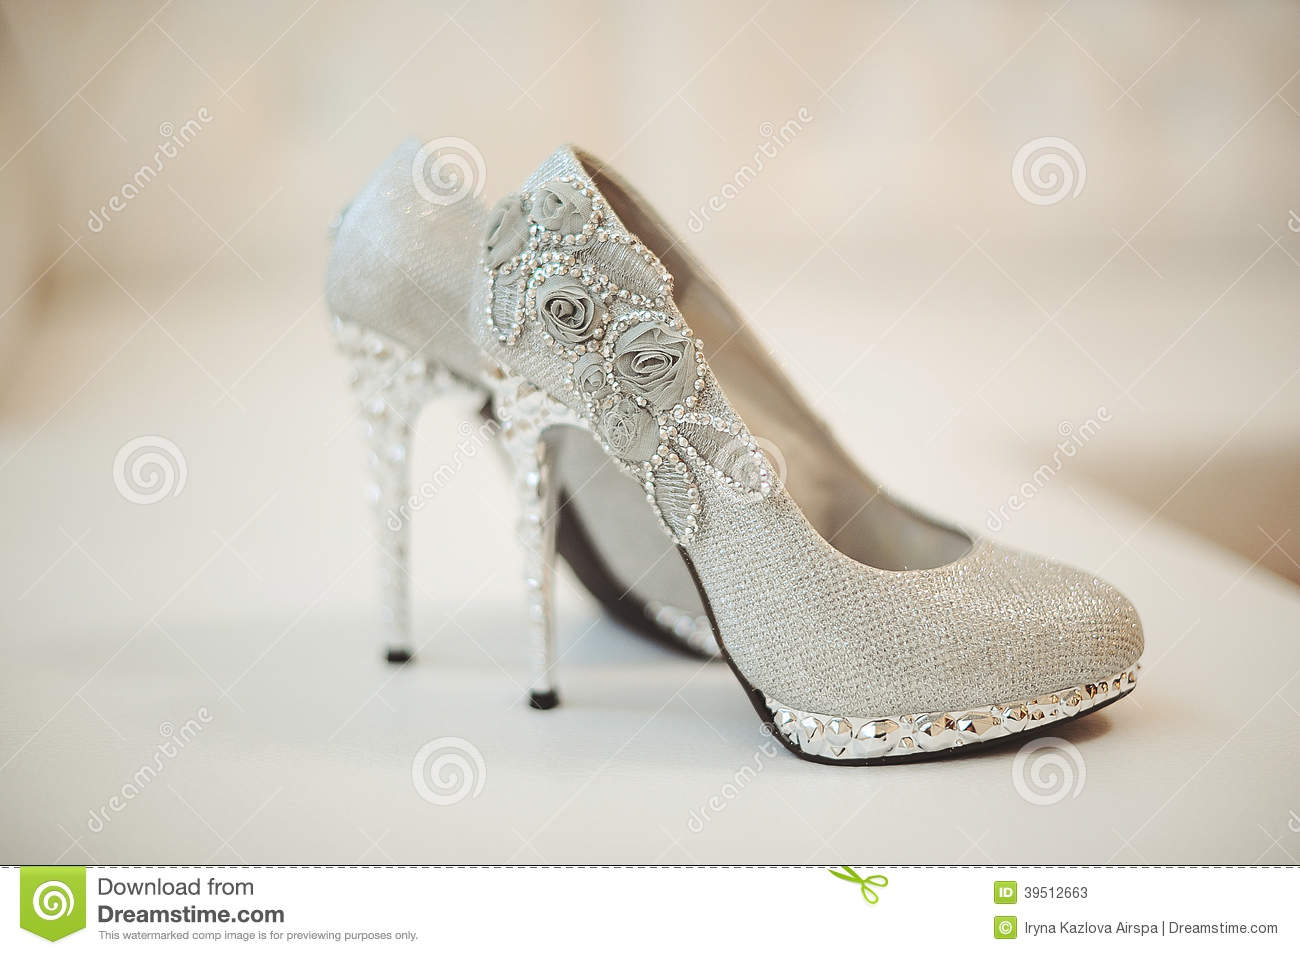 Wedding shoes of the bride